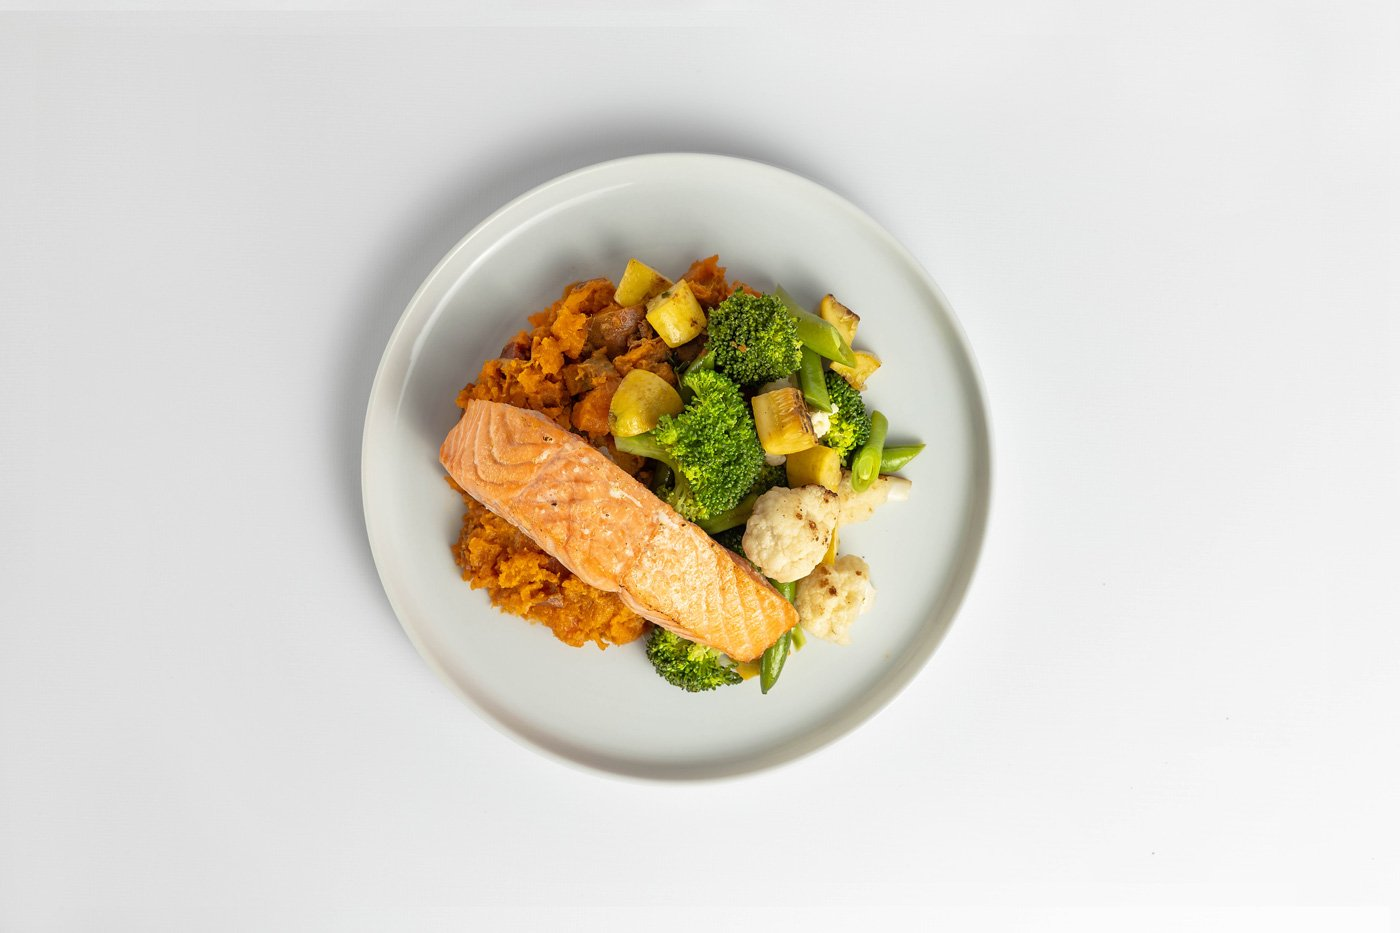 Salmon, Sweet Potato, Mixed Vegetables Meal Product Image